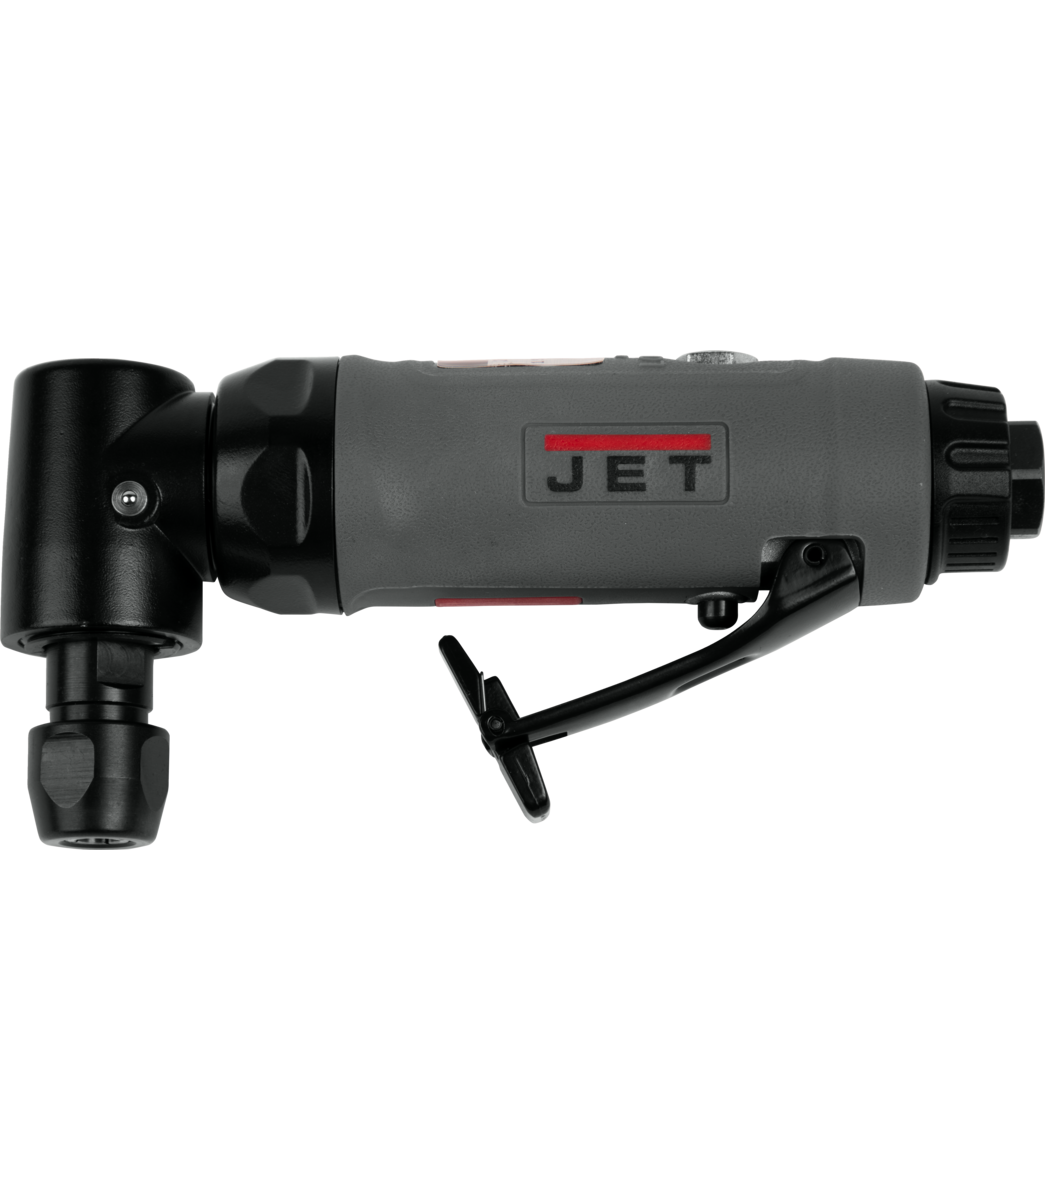 "JAT-415 1/4""  RIGHT ANGLE COMPOSITE DI"